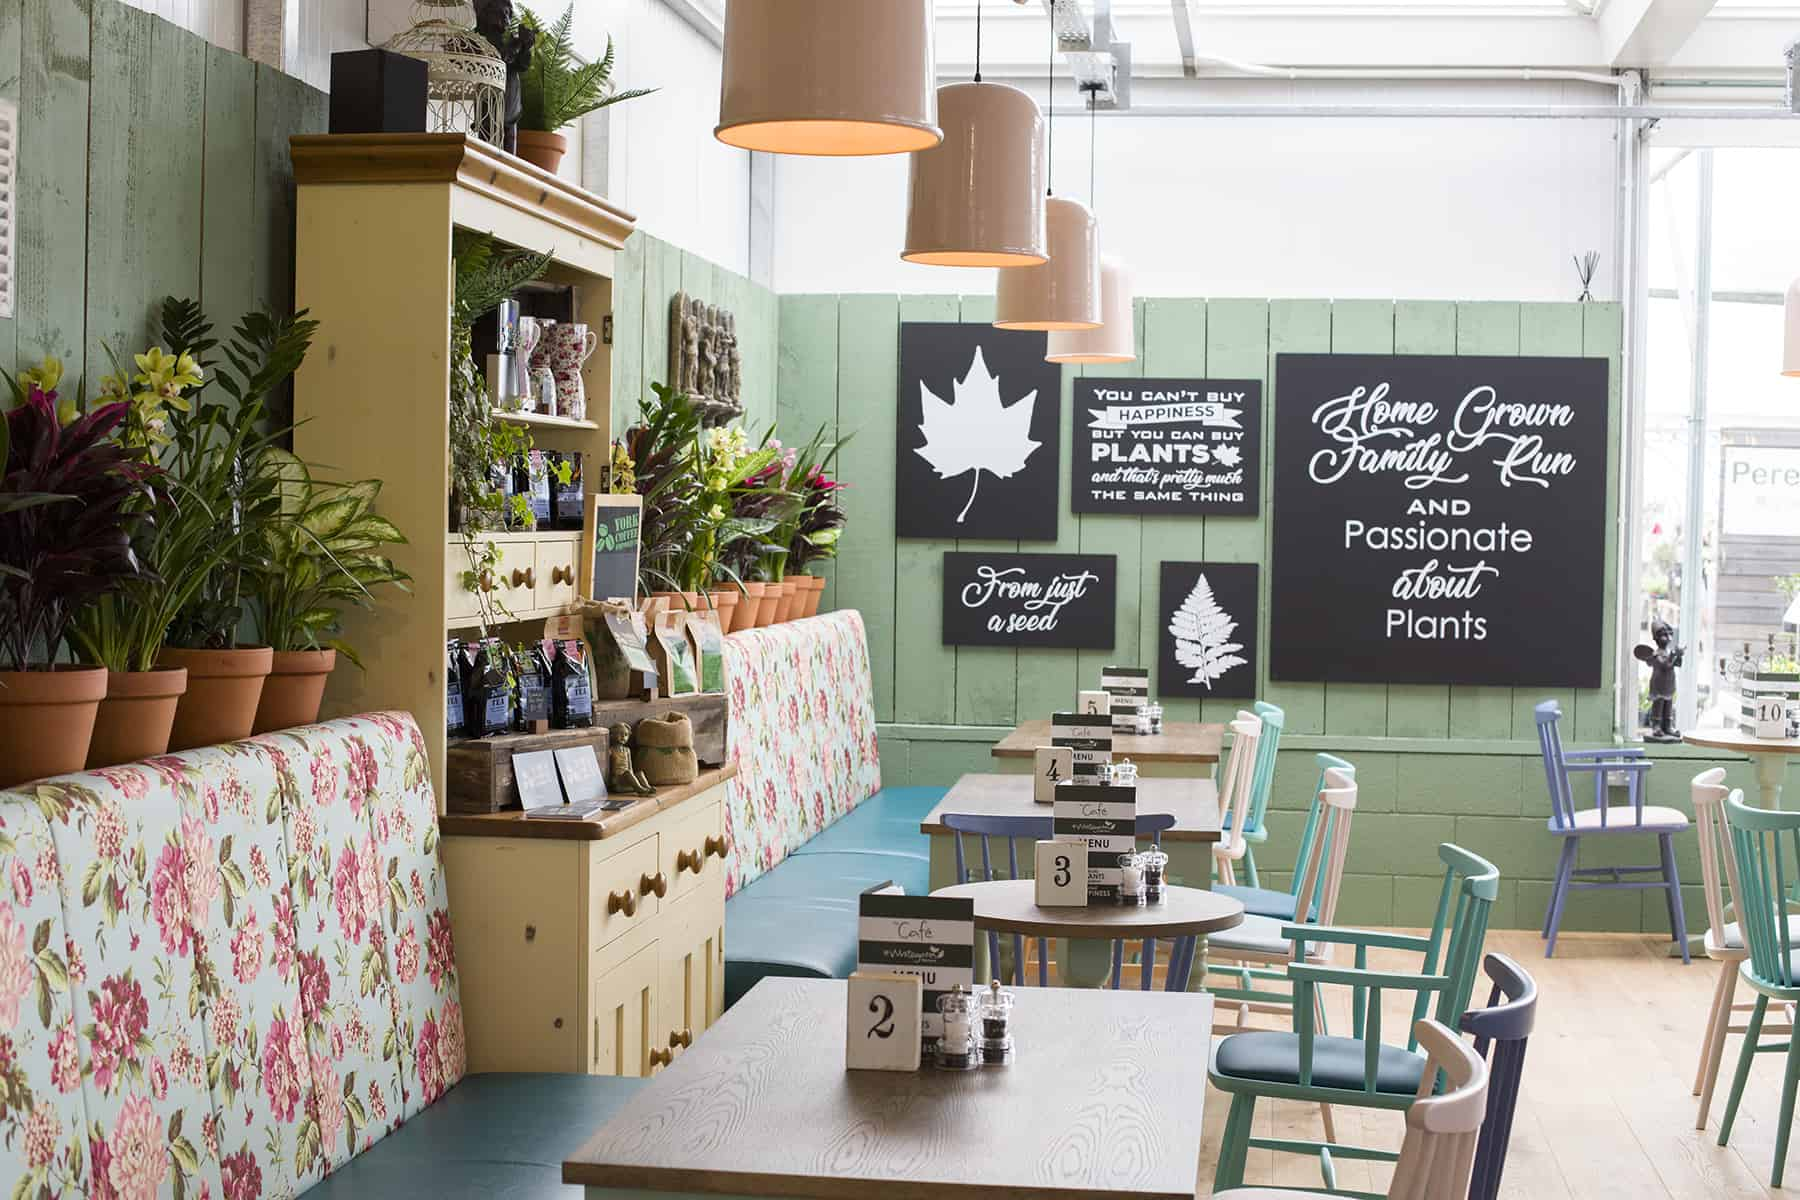 To what extent is coffee shop branding possible through interior design?